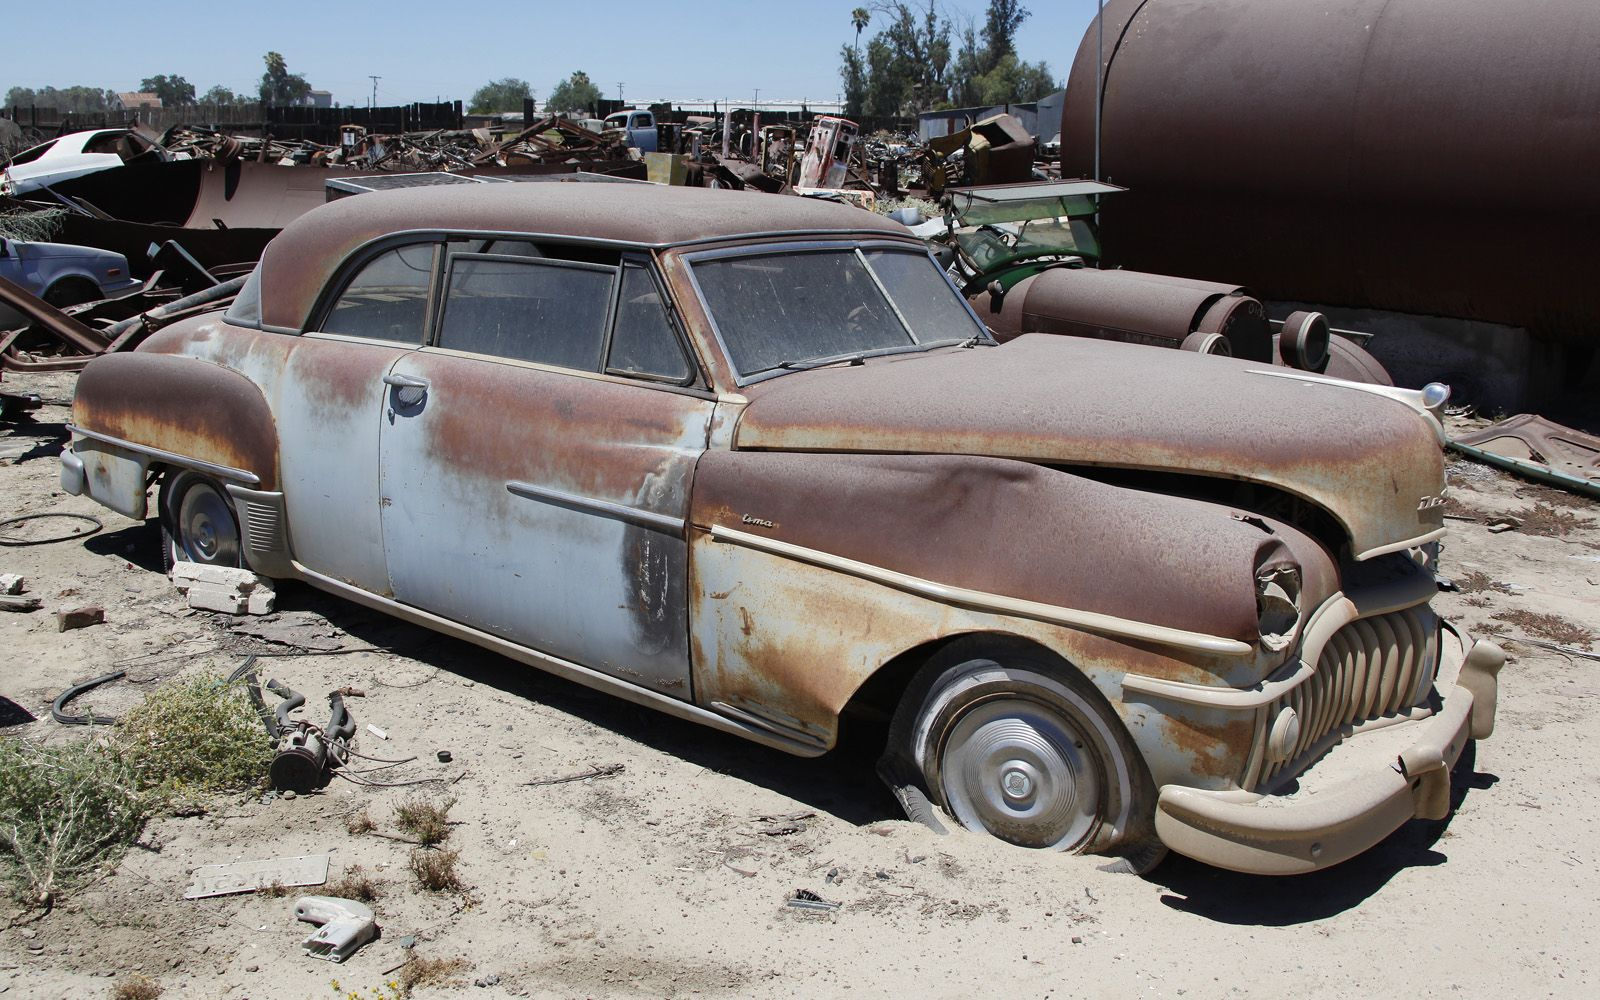 Pin By Dave Roehrle On Junk Yards And Rusty Stuff Cool